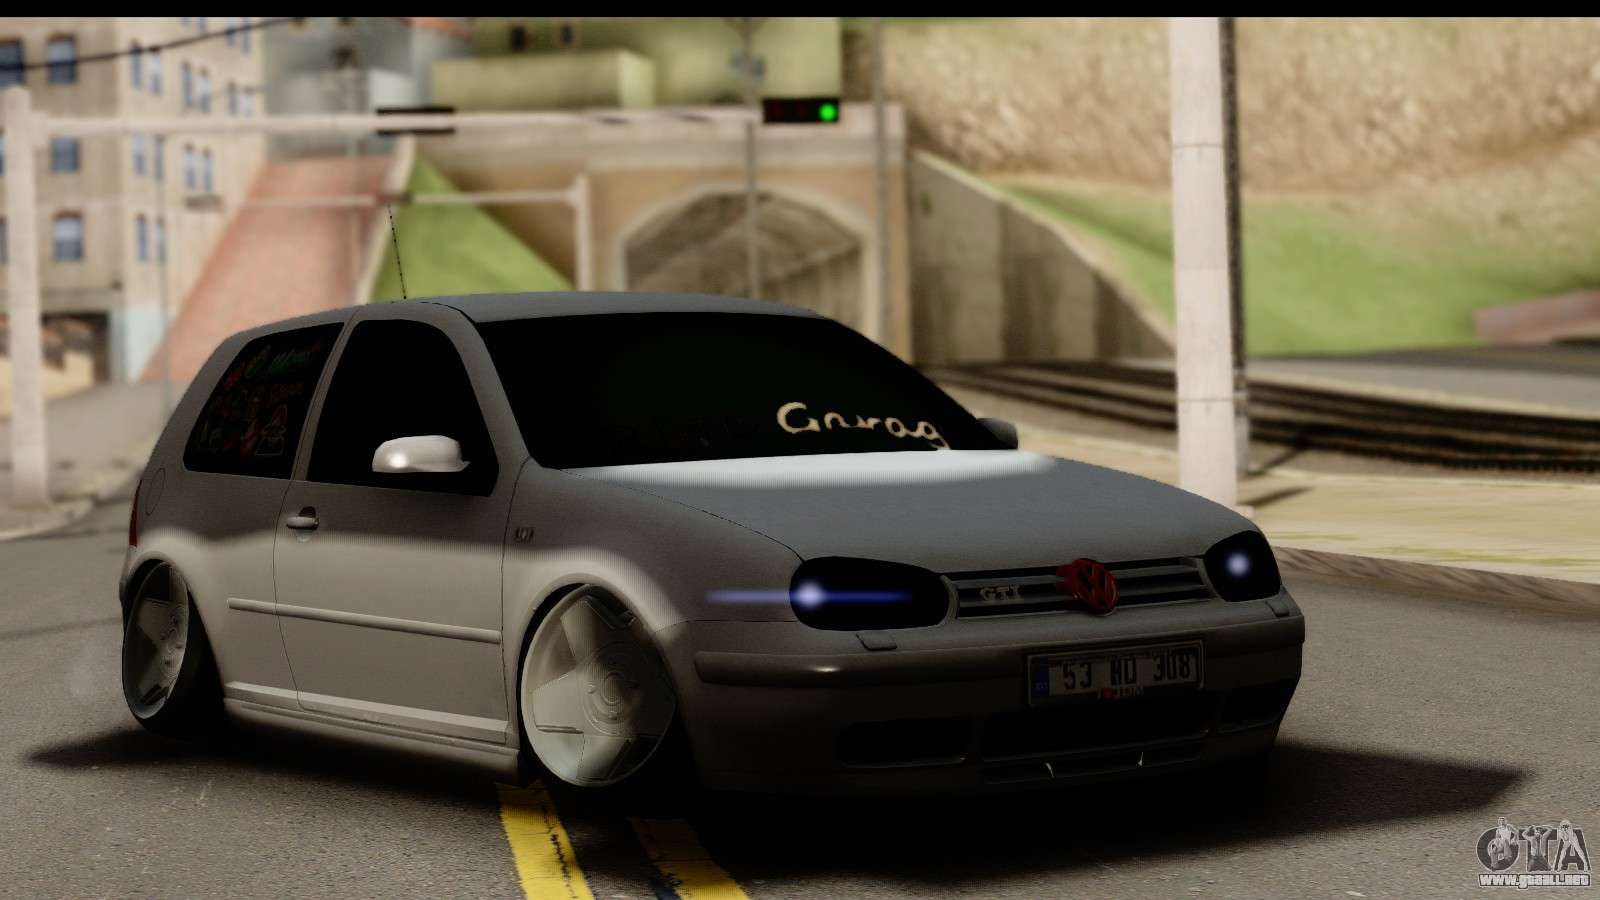 volkswagen golf 4 tuning para gta san andreas. Black Bedroom Furniture Sets. Home Design Ideas